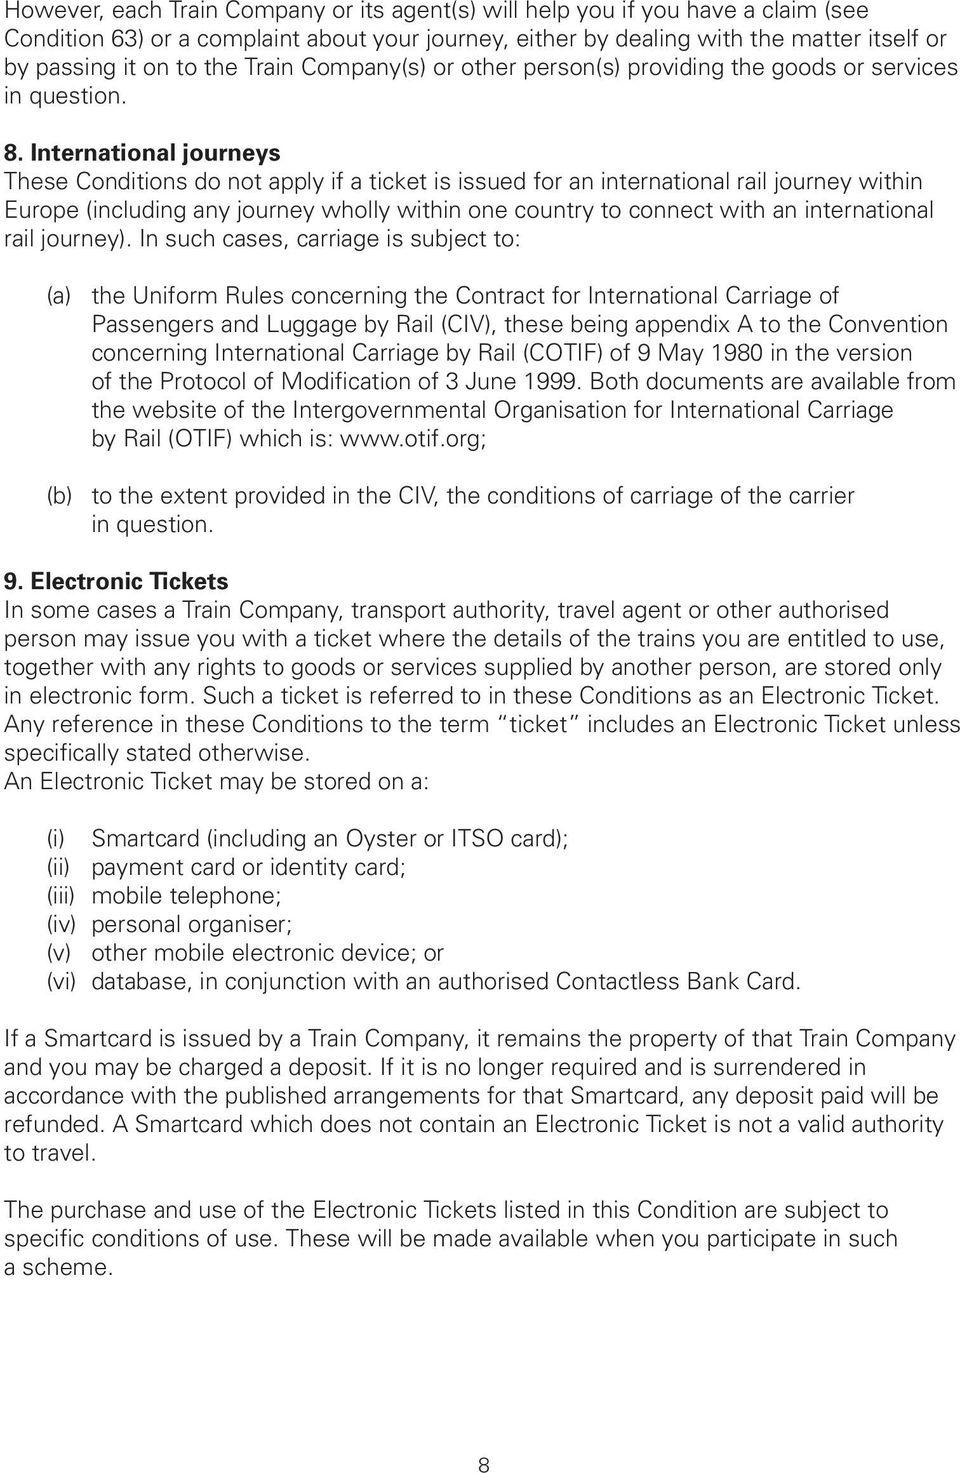 International journeys These Conditions do not apply if a ticket is issued for an international rail journey within Europe (including any journey wholly within one country to connect with an